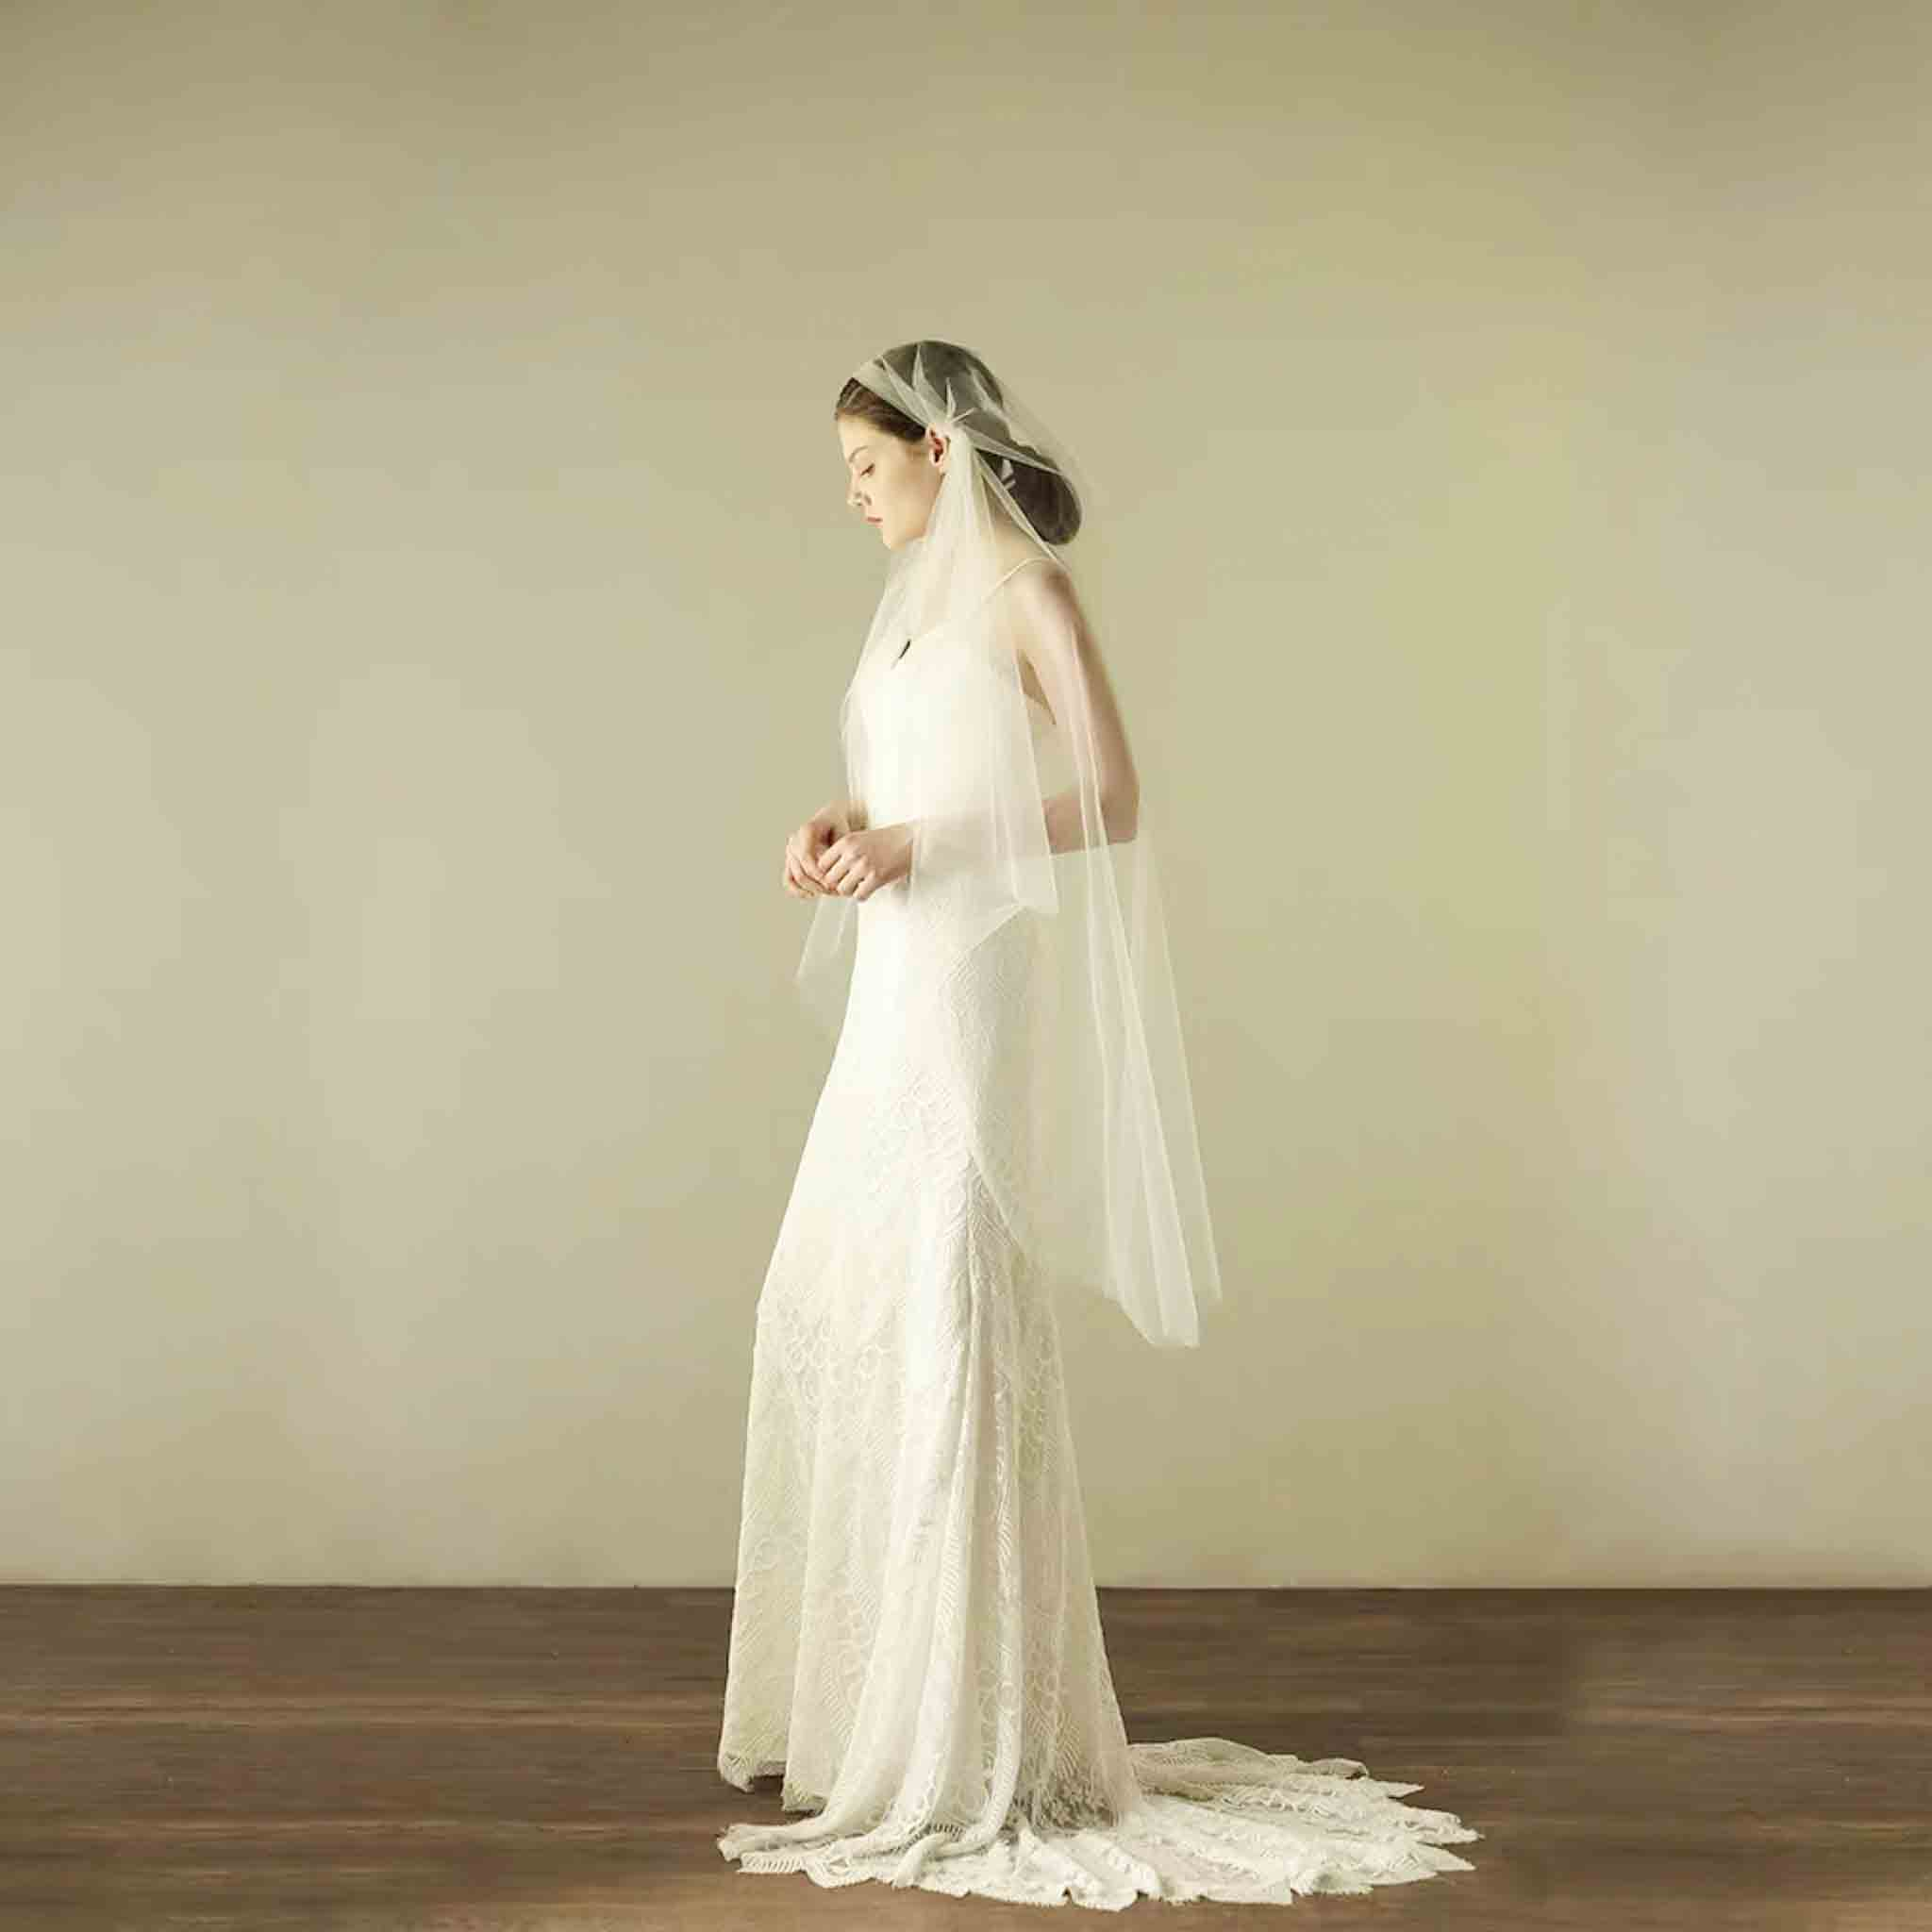 Simple Juliet Cap Wedding Bridal Veil